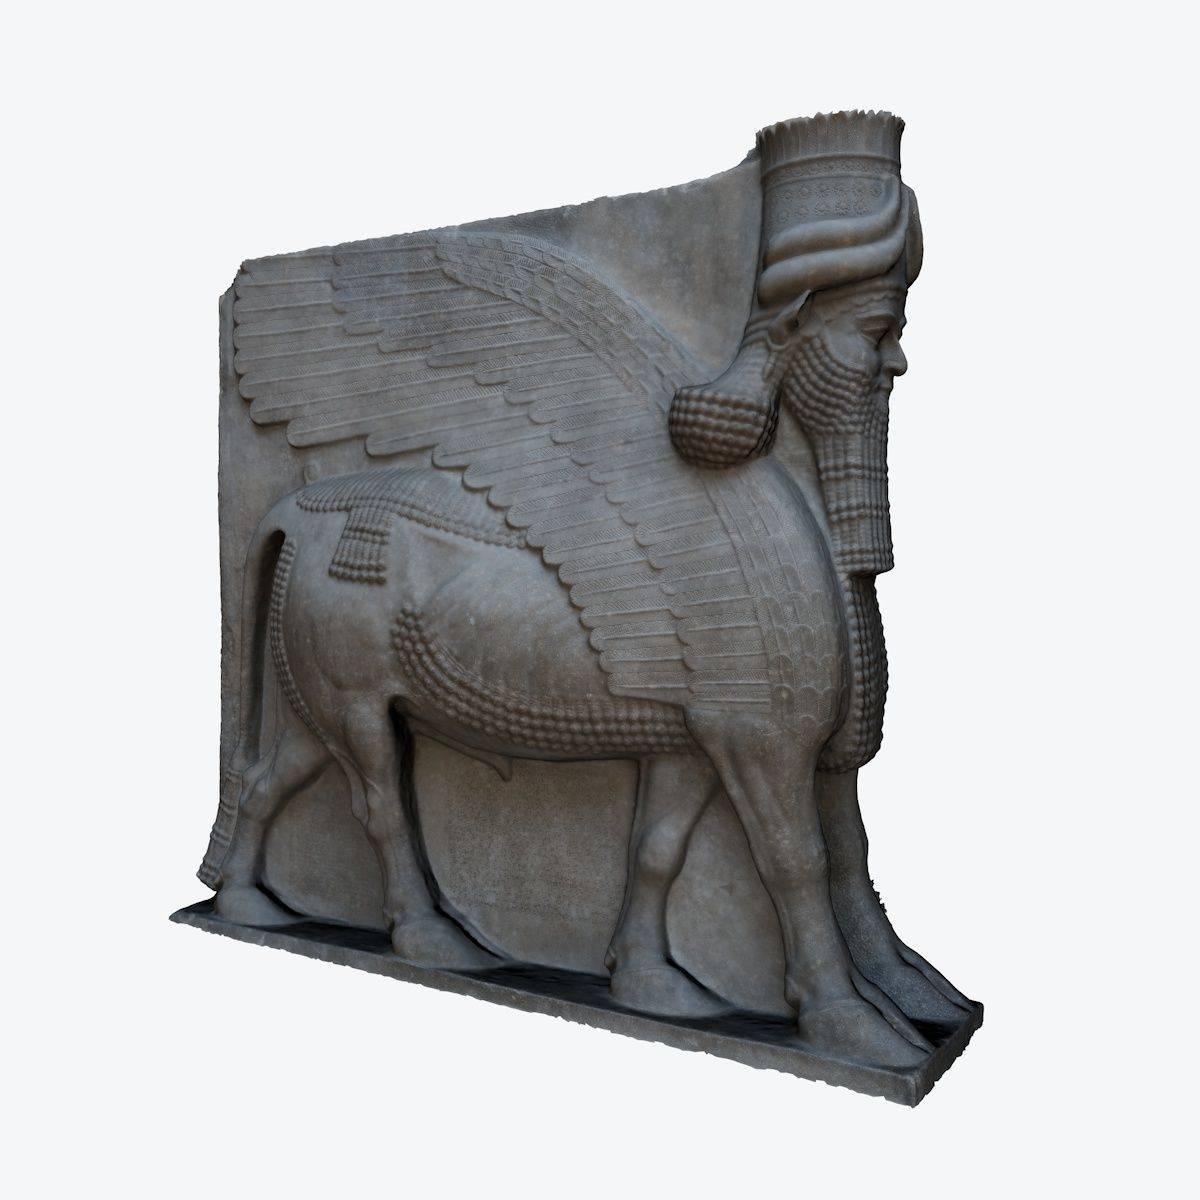 ASSYRIAN STATUE - WINGED BULL OF KORSABAD